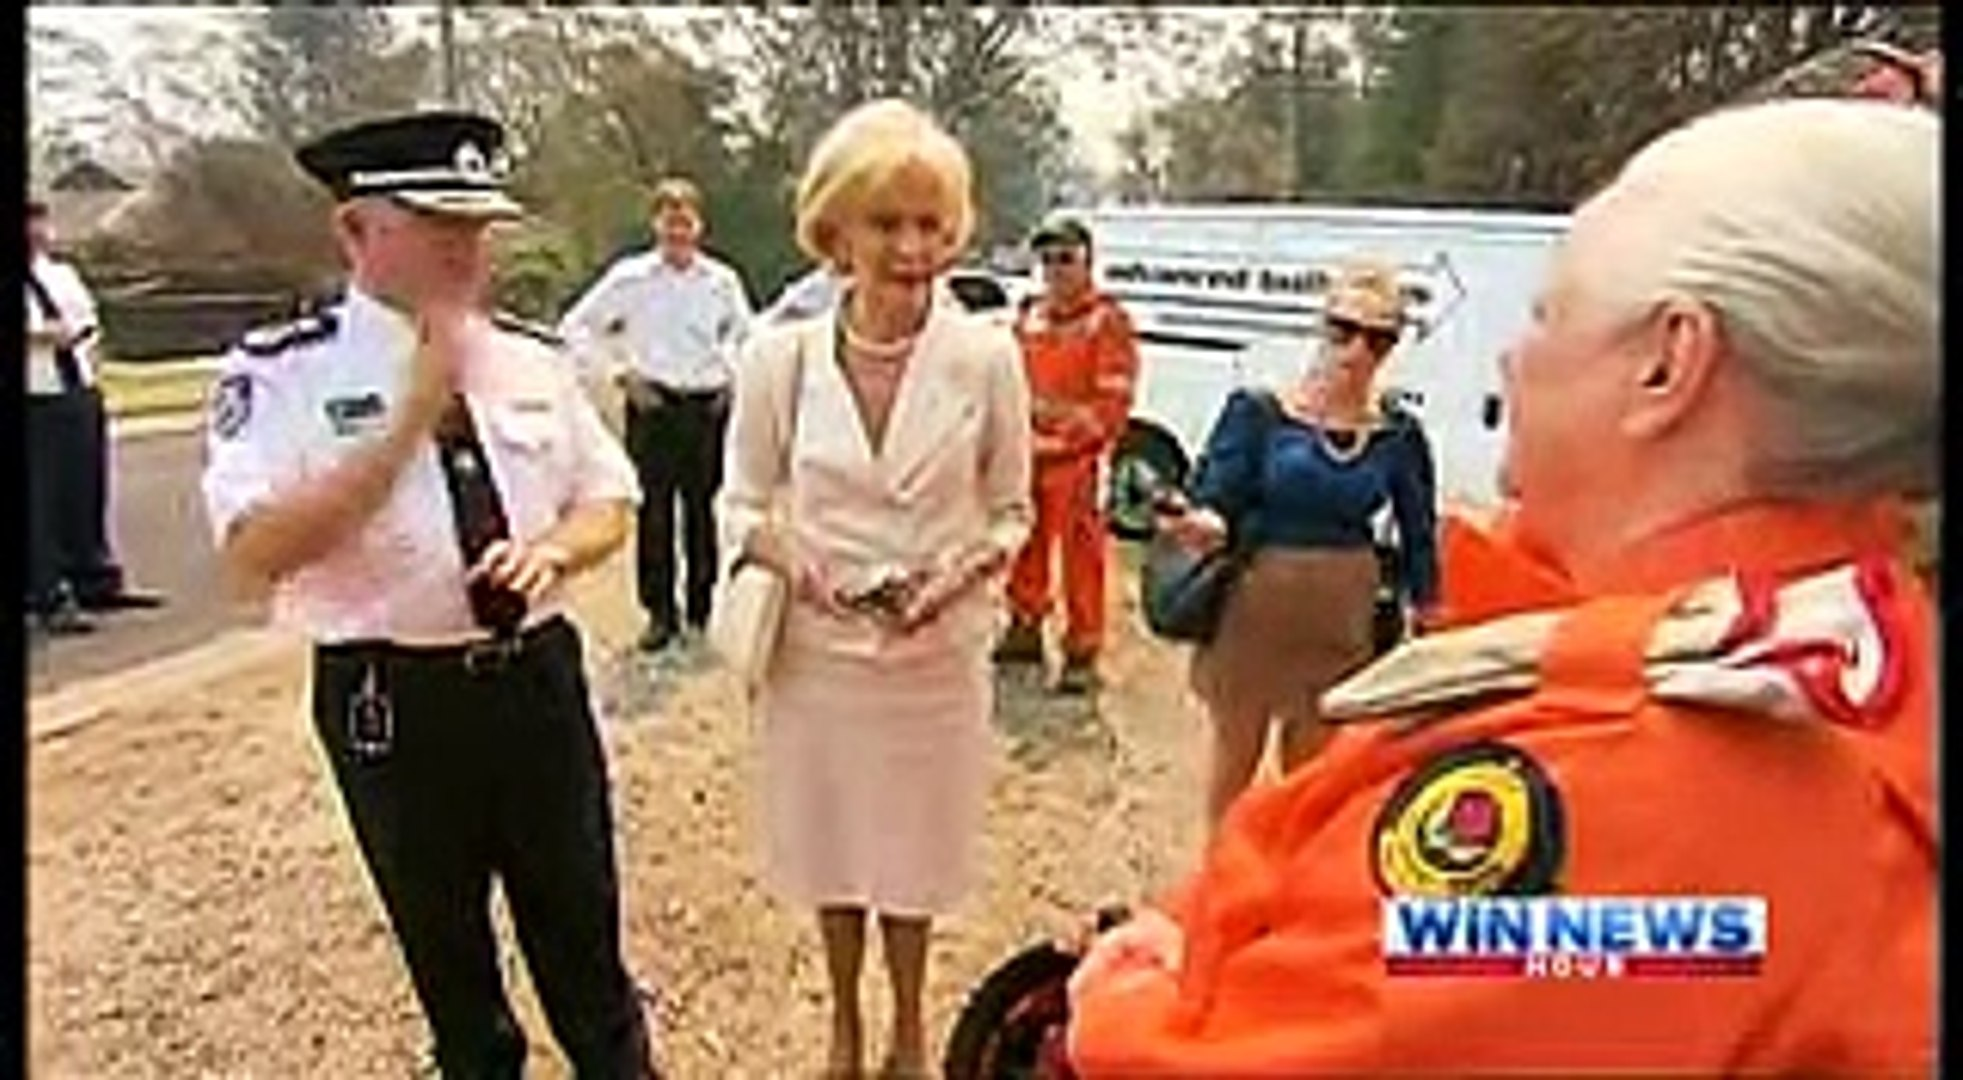 WIN 9 News 25 10 2013 Blue Mountains Bushfire Emergency from 17 10 2013 to 29 10 2013